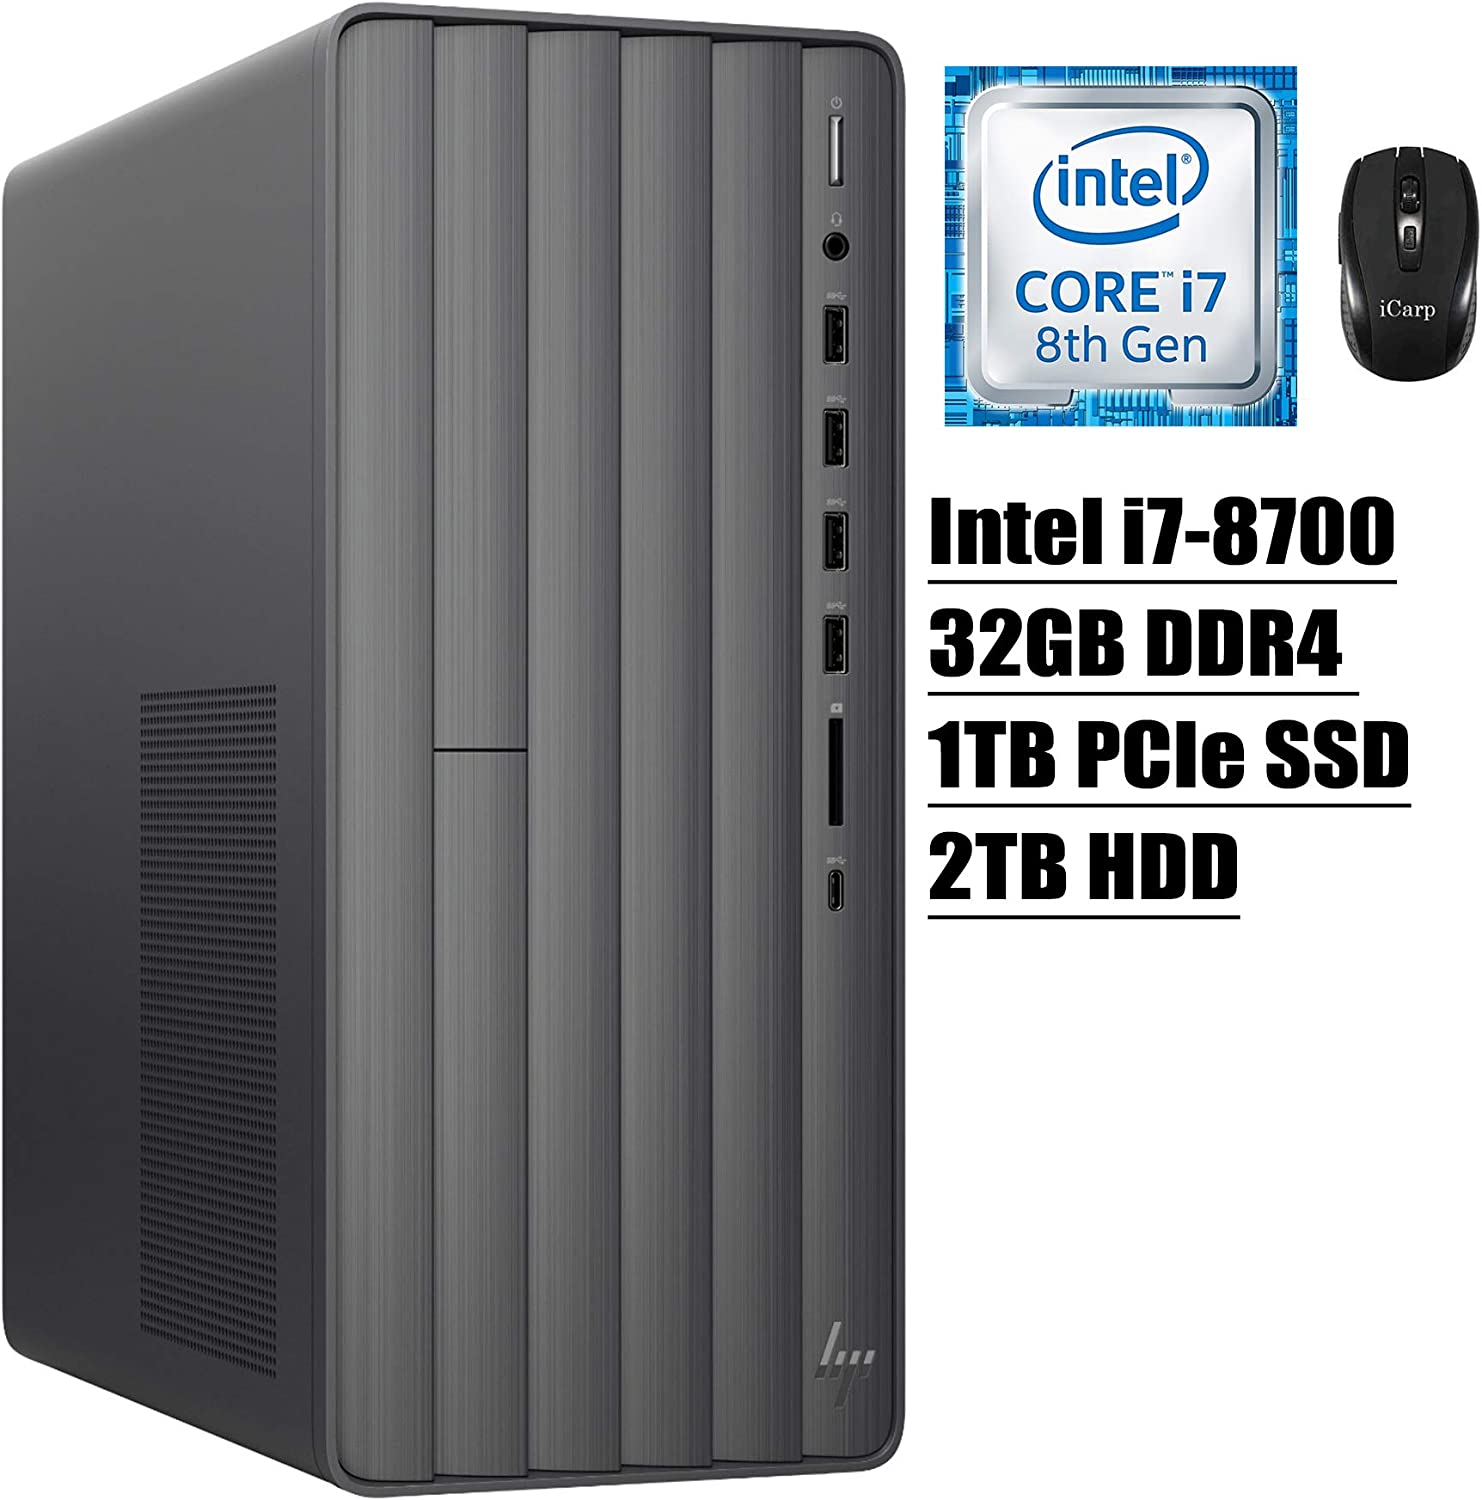 2020 Latest HP Envy Desktop High Performance Entertainment Computer 8th Gen Intel Hexa-Core i7-8700 up to 4.6GHz 32GB DDR4 1TB PCIe SSD 2TB HDD WiFi Type-C DVD-RW Win 10 + iCarp Wireless Mouse